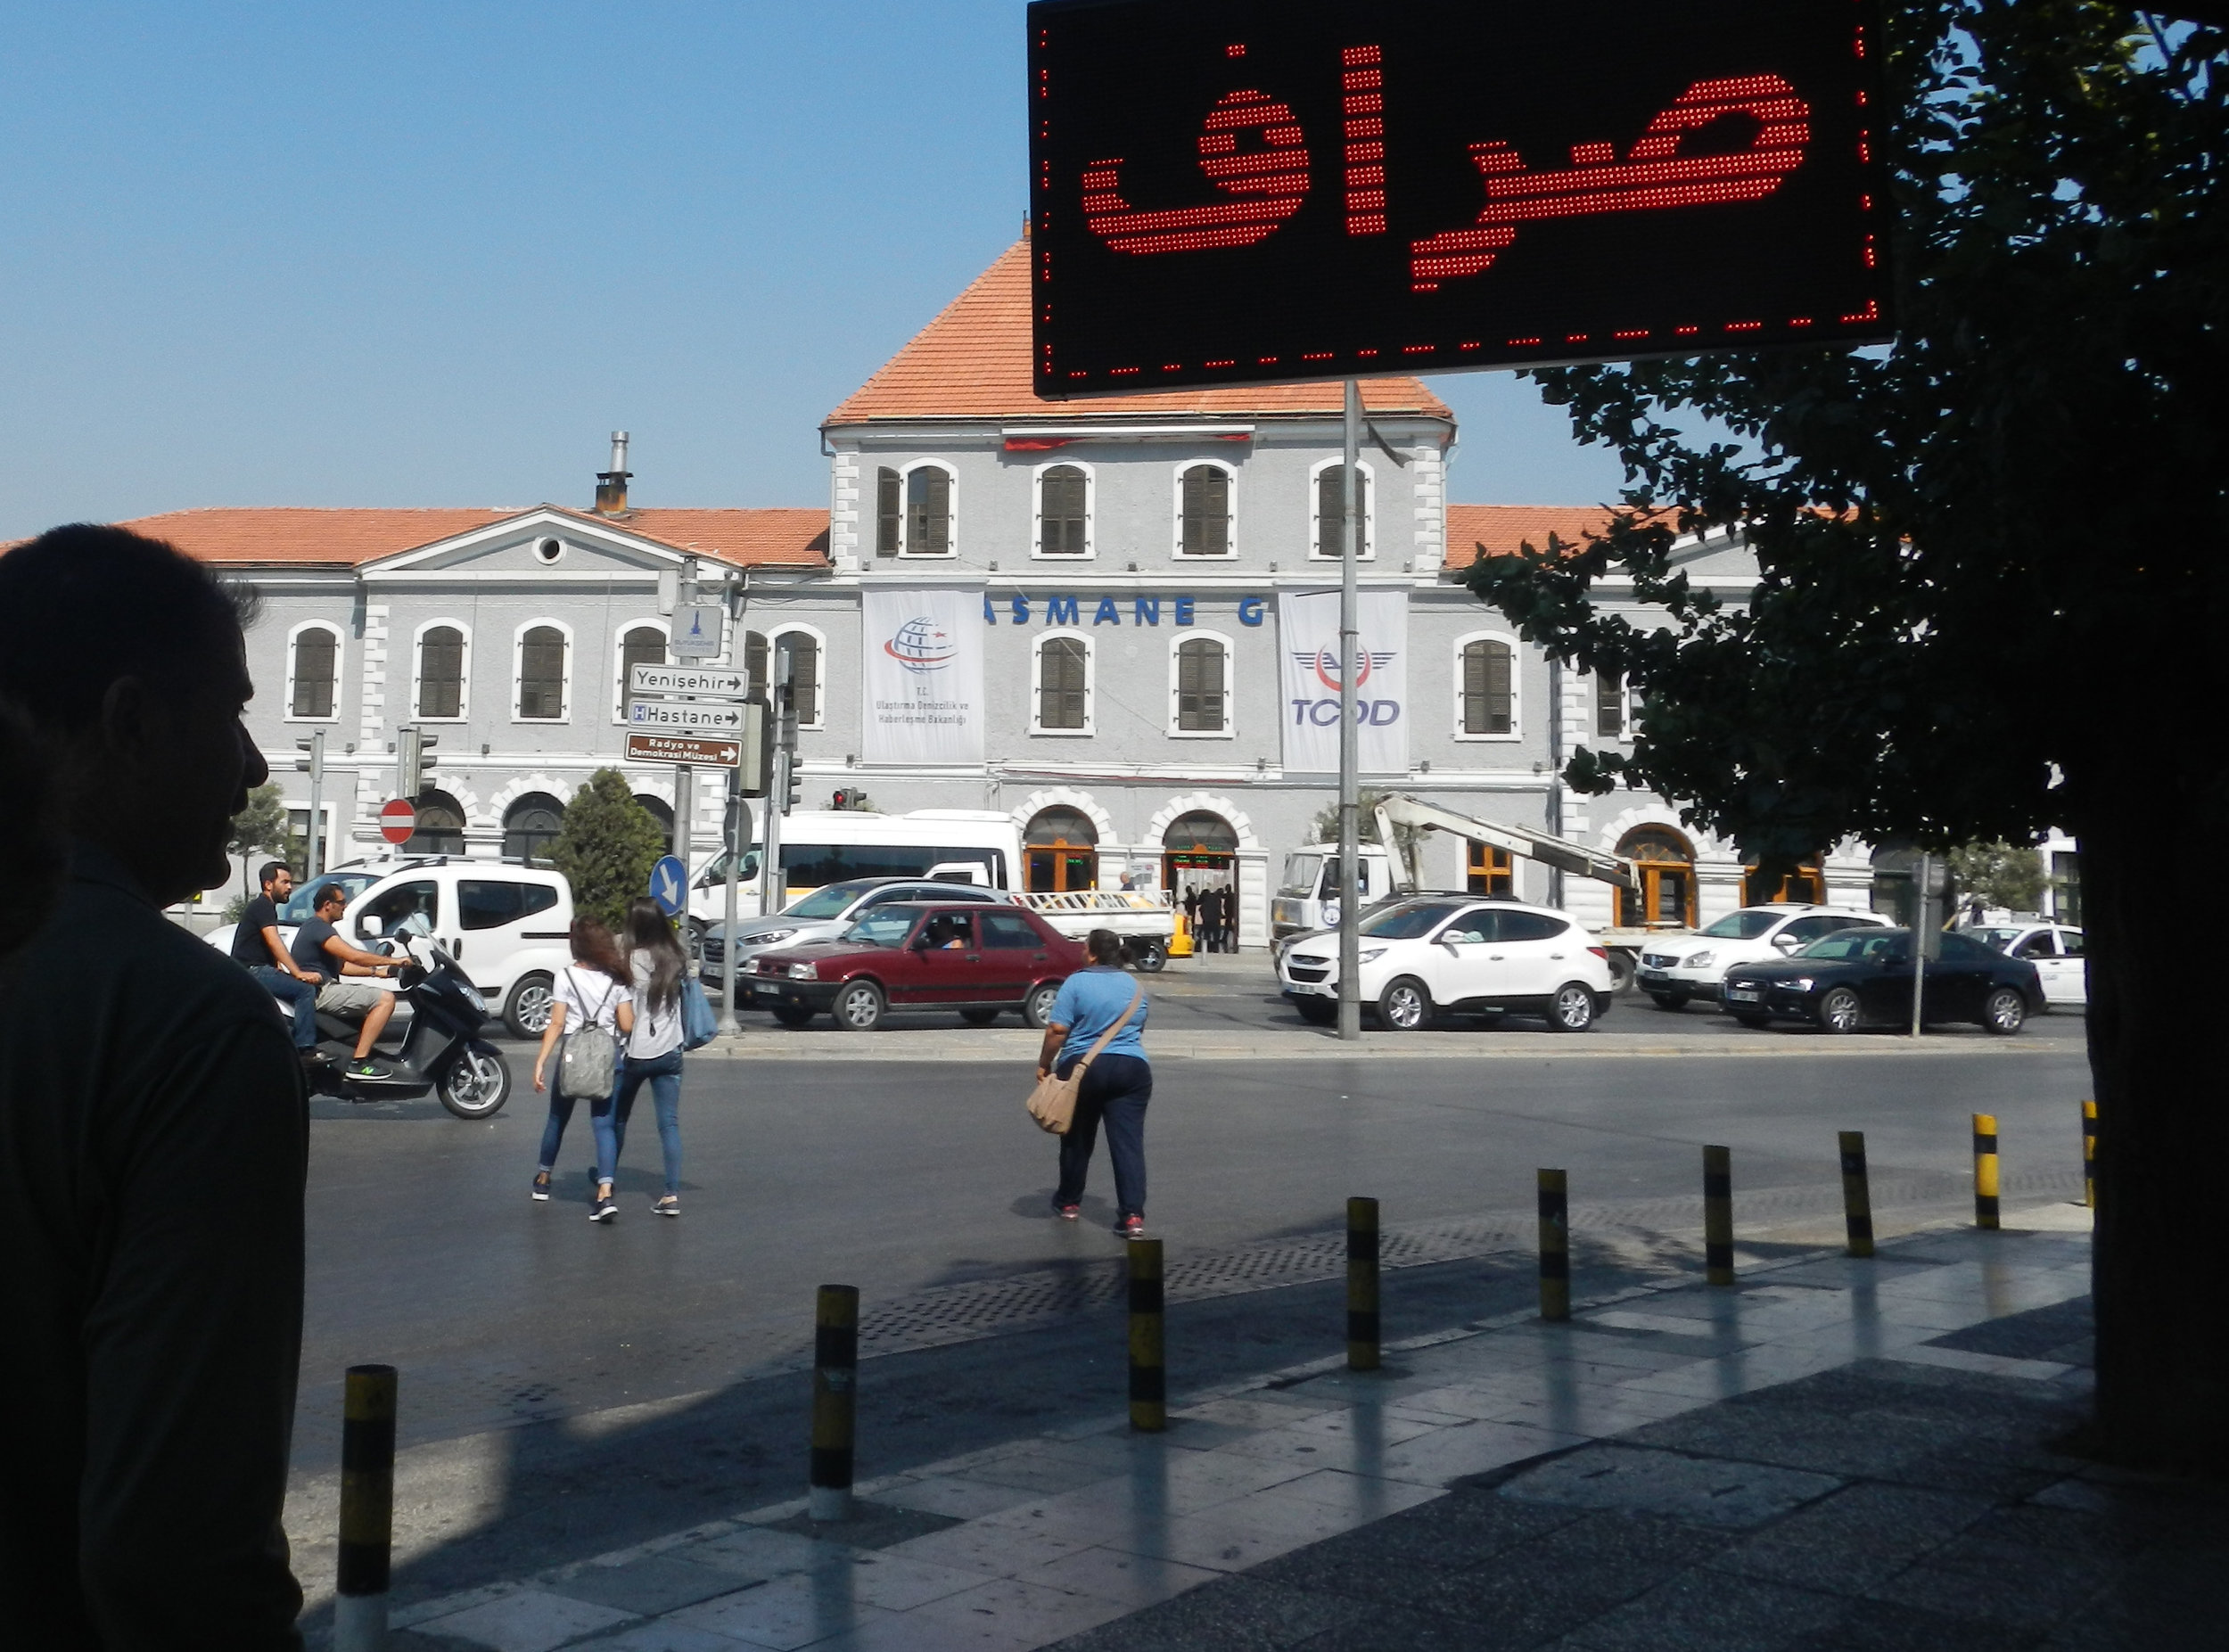 An Arabic sign advertises a  saraf , or money transfer shop which sends funds across the Arab region, Turkey, and Europe through informal networks. In the background is Basmane Gari, the train station that gives the neighborhood its name.